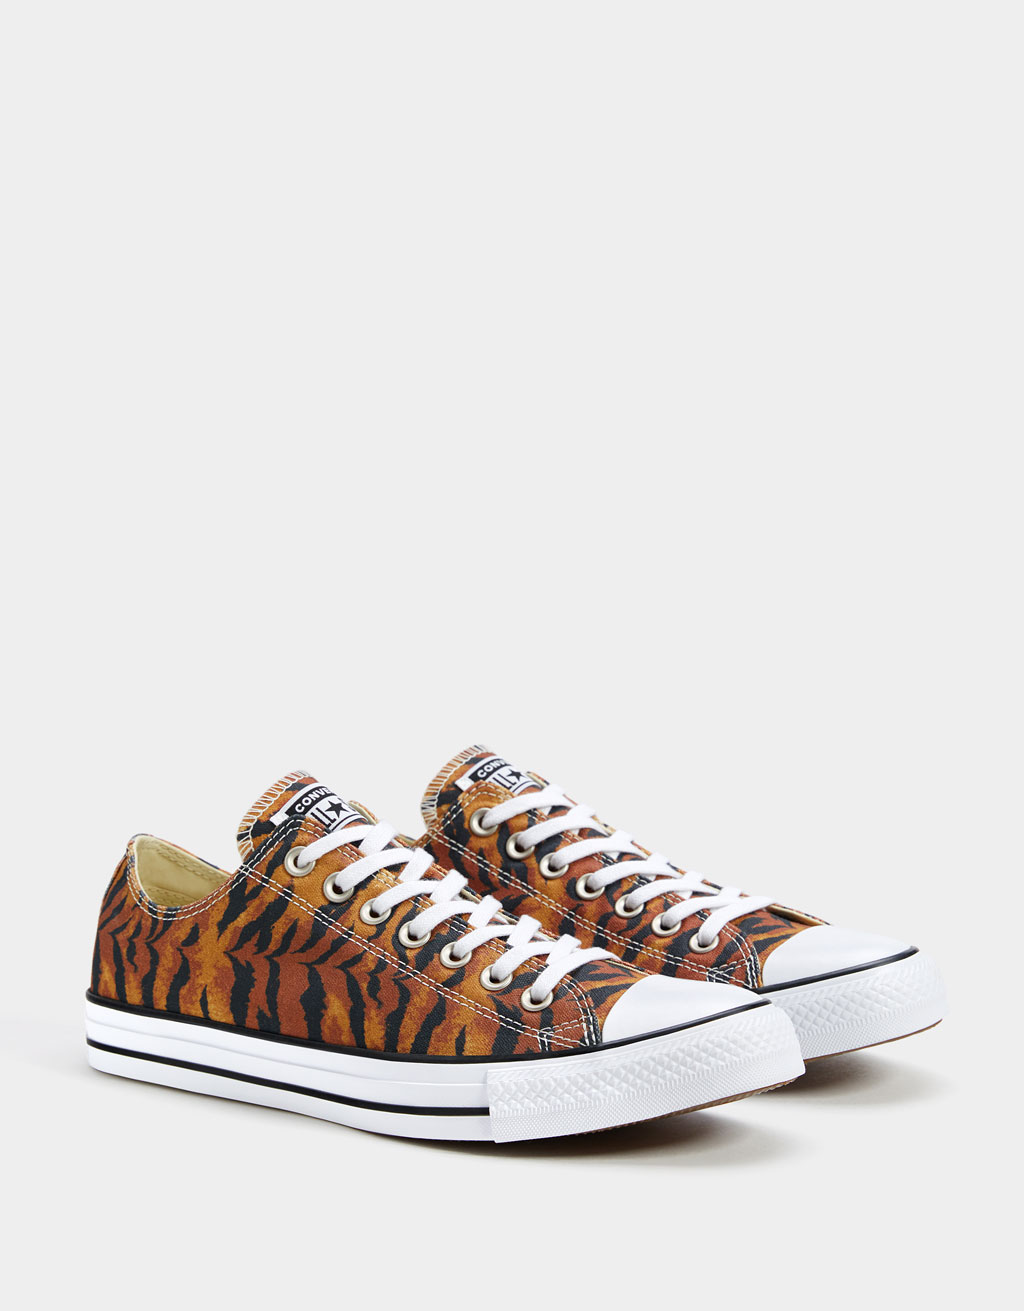 Zapatilla estampado animal CONVERSE ALL STAR hombre